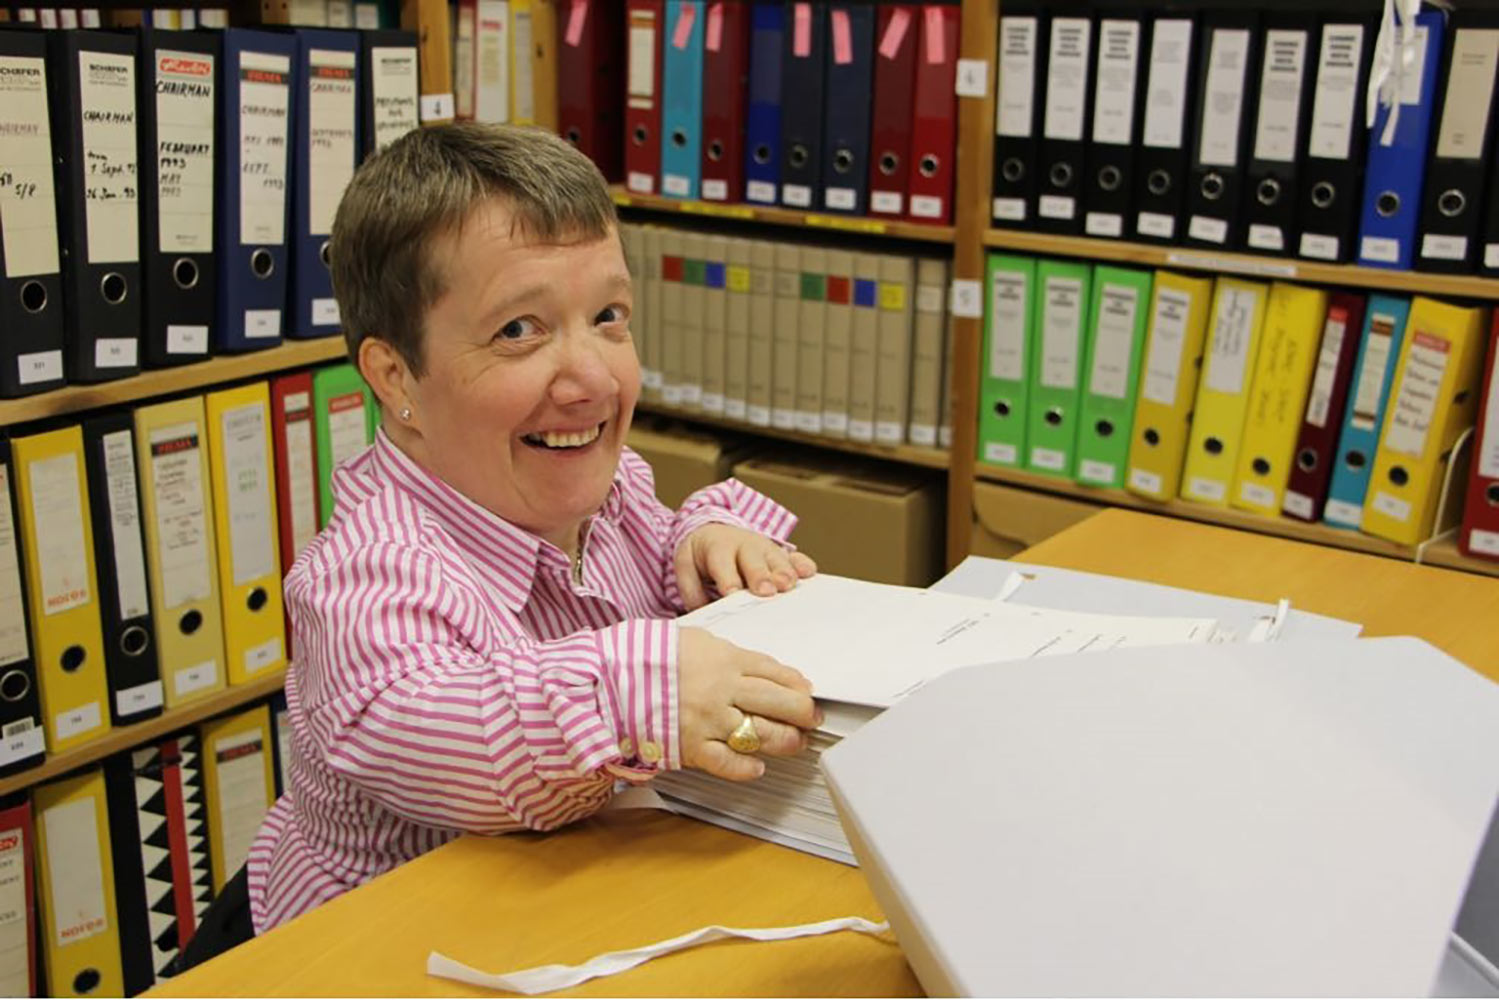 Elizabeth McAvoy, Archivist with responsibility for Education and Outreach